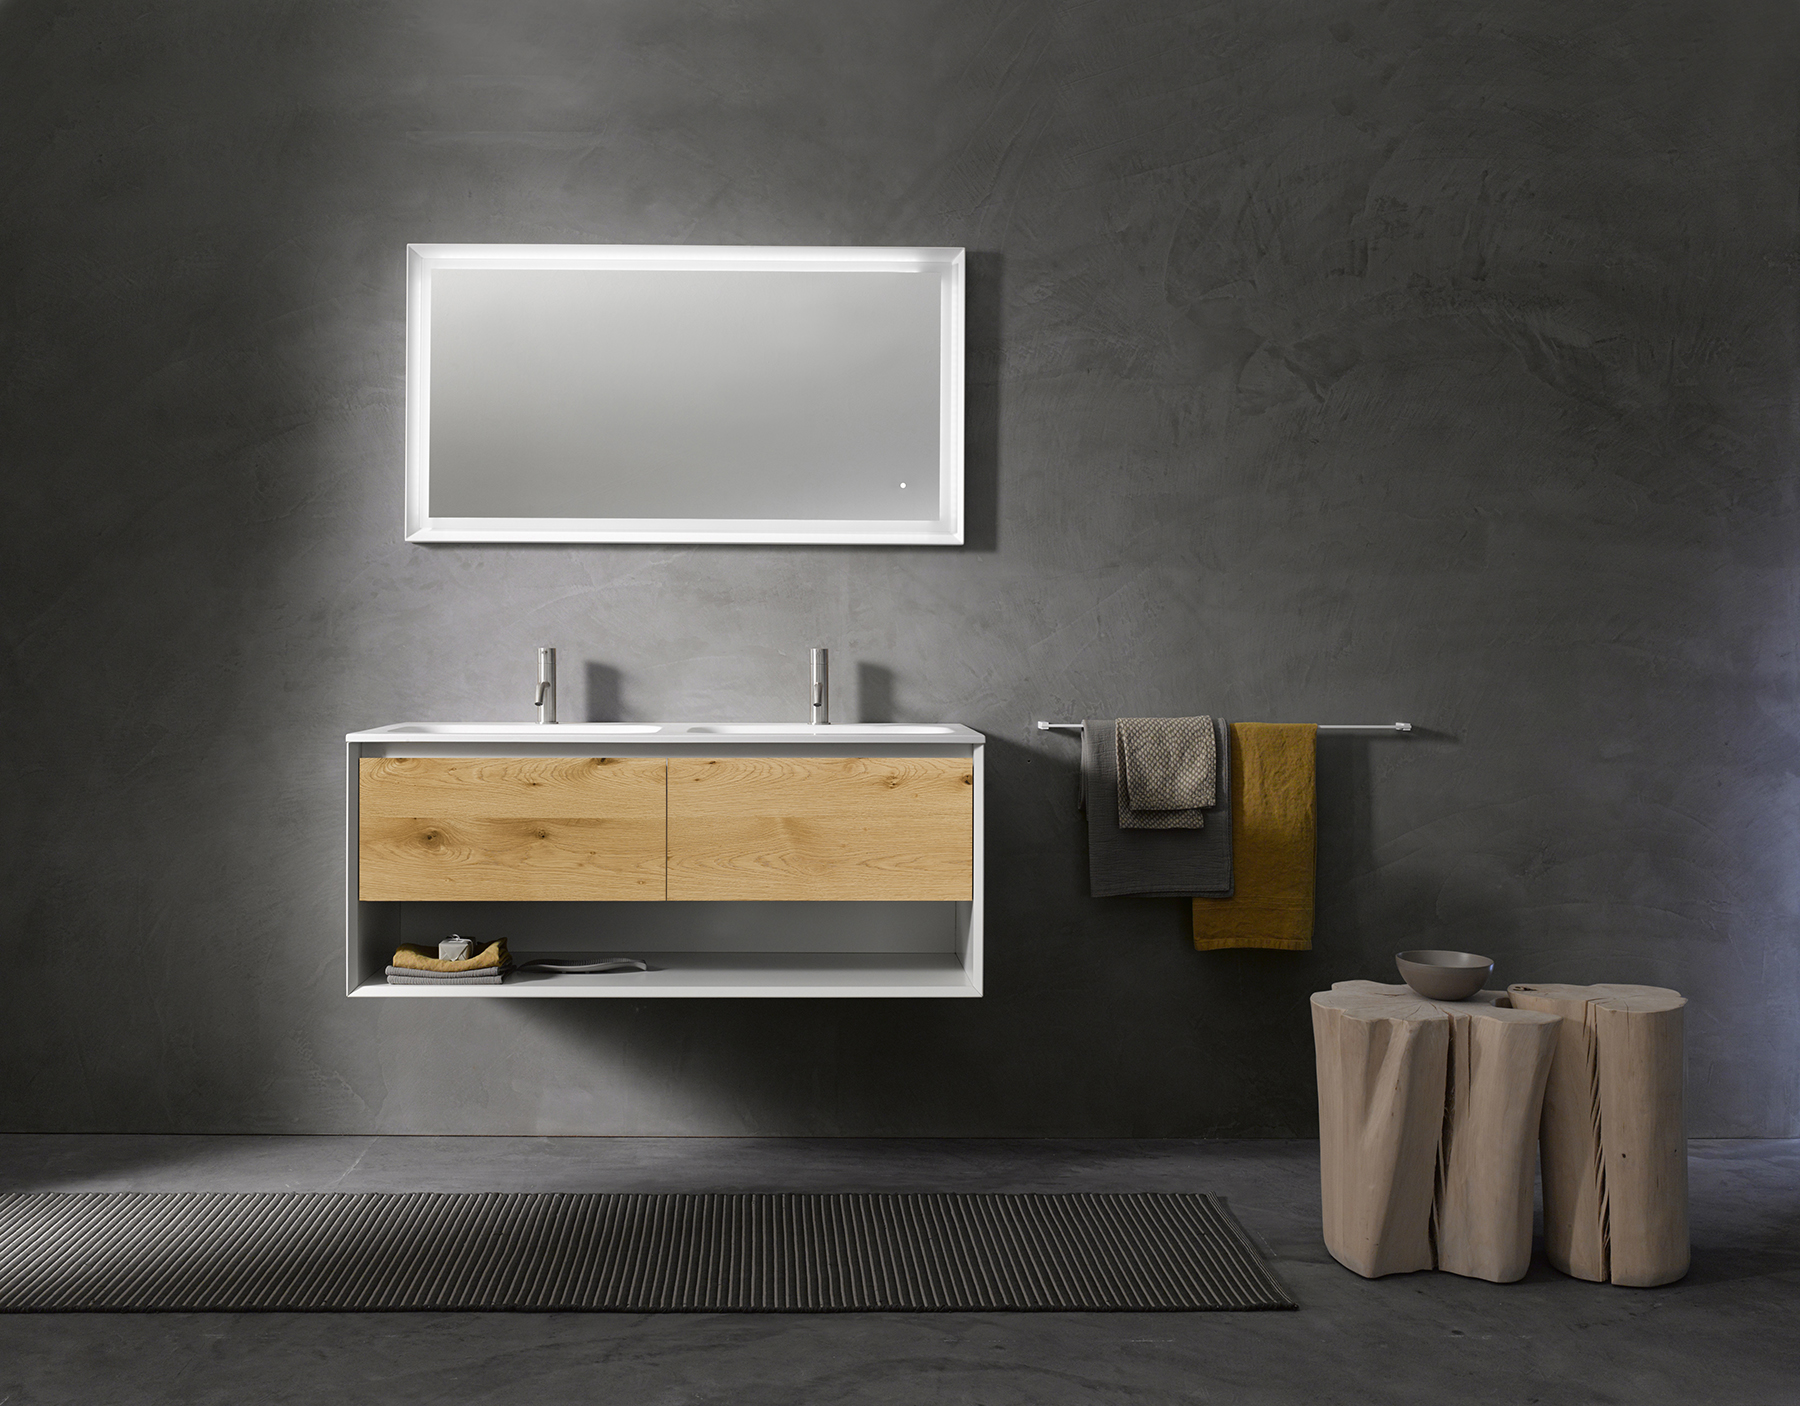 Modern 45 Degree Wall Mount Vanity w/ Open Shelf Series 1400